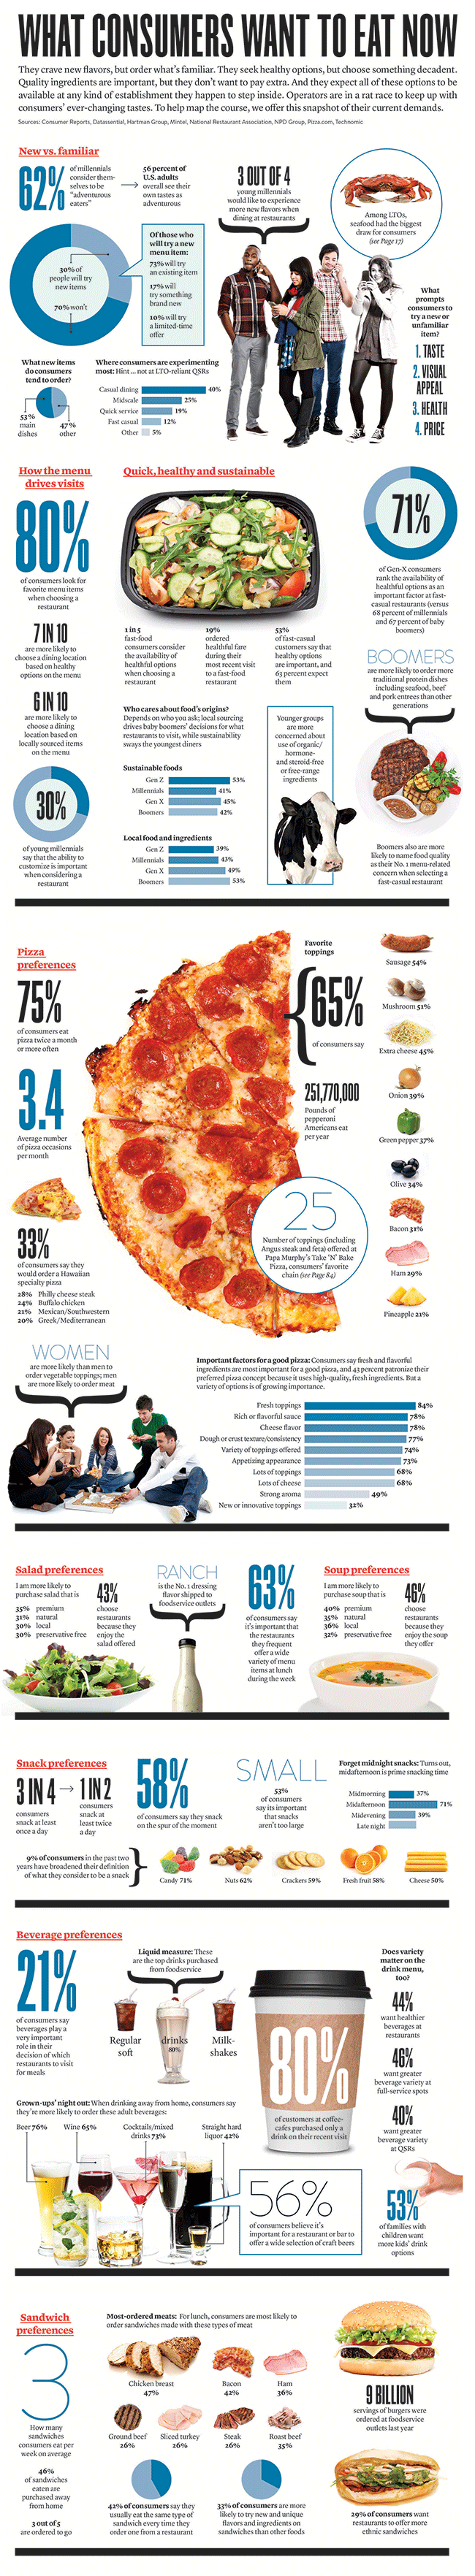 What Consumers Want To Eat Now